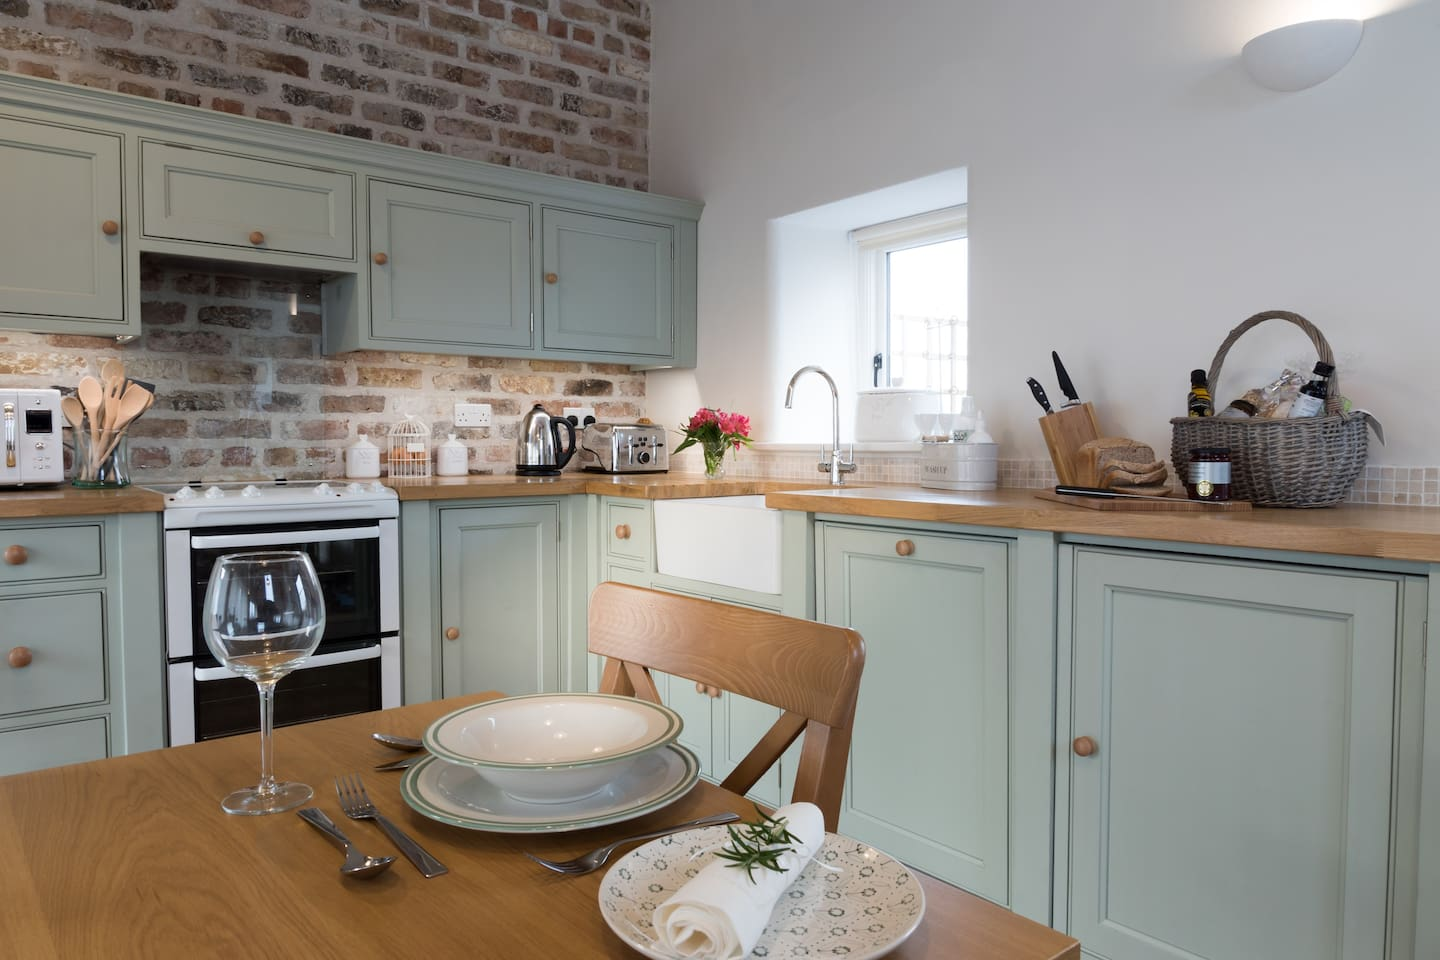 Luxury eco holiday cottage in the heart of Yorkshire's Nature Triangle